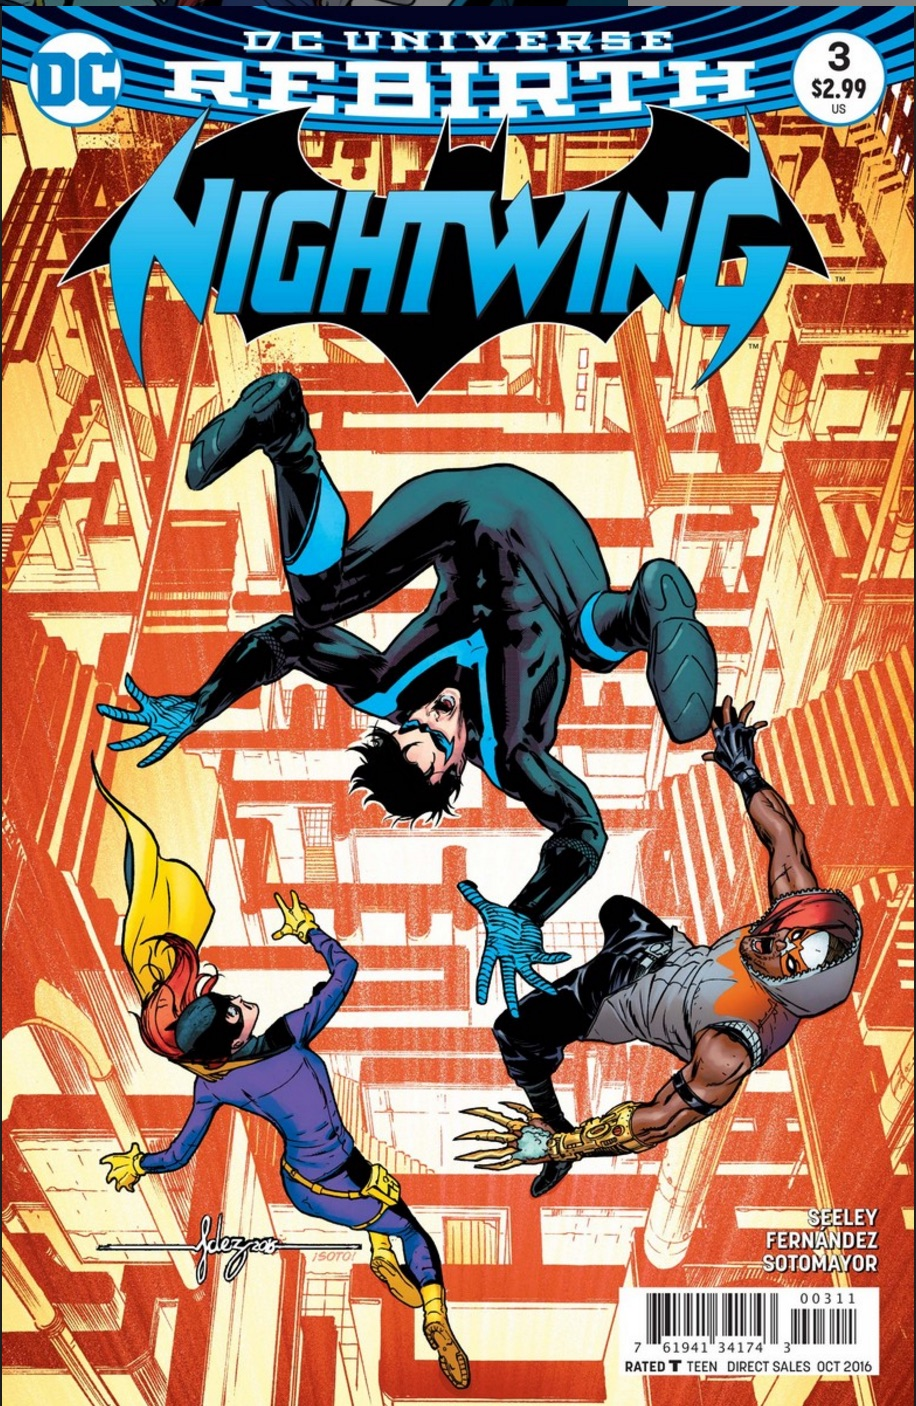 Nightwing #3 Review